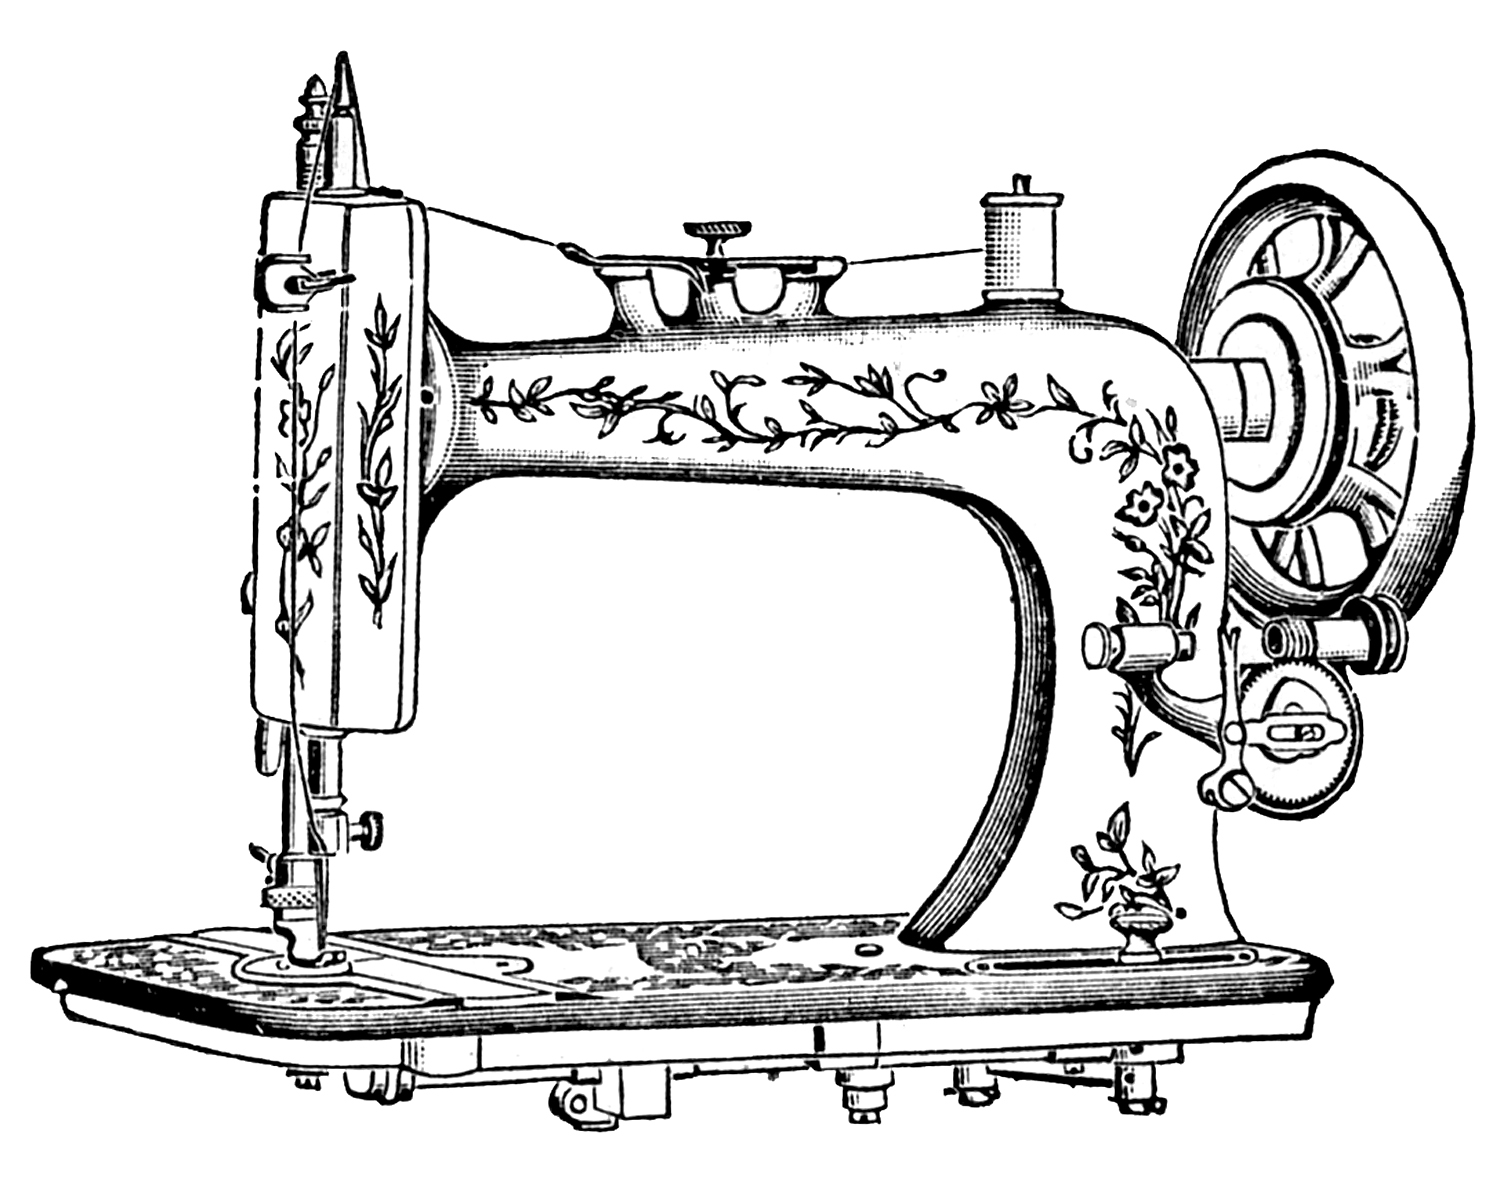 sewing+machine+antique++Image+GraphicsFairy5.jpg